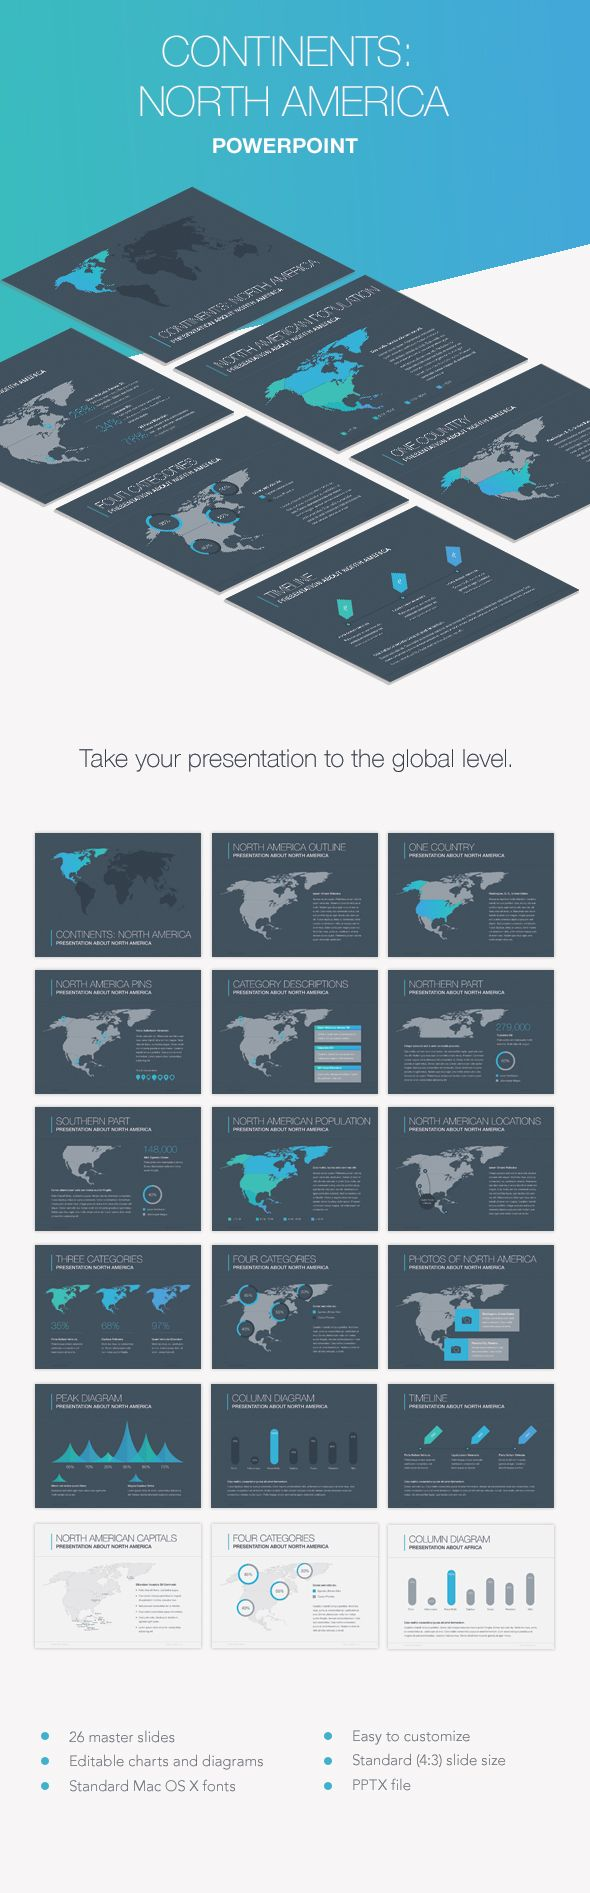 Continents north america powerpoint template templates continents north america powerpoint template toneelgroepblik Image collections